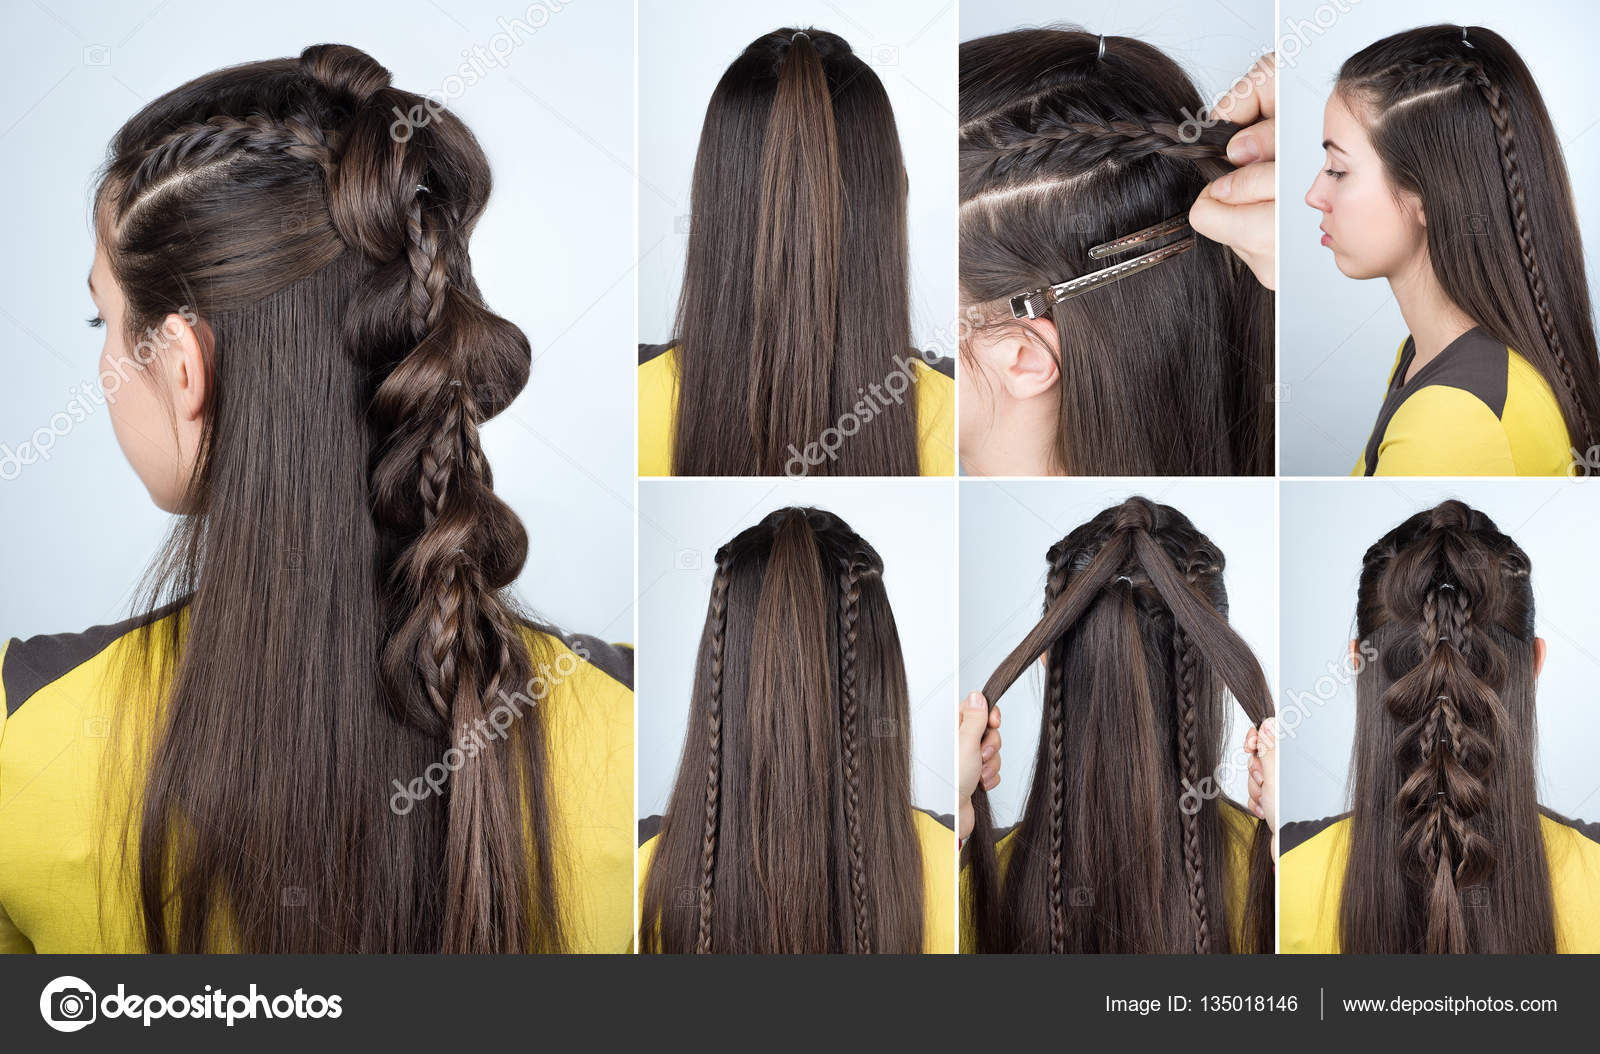 Hairstyle Plait For Party Tutorial Stock Photo Alterphoto 135018146